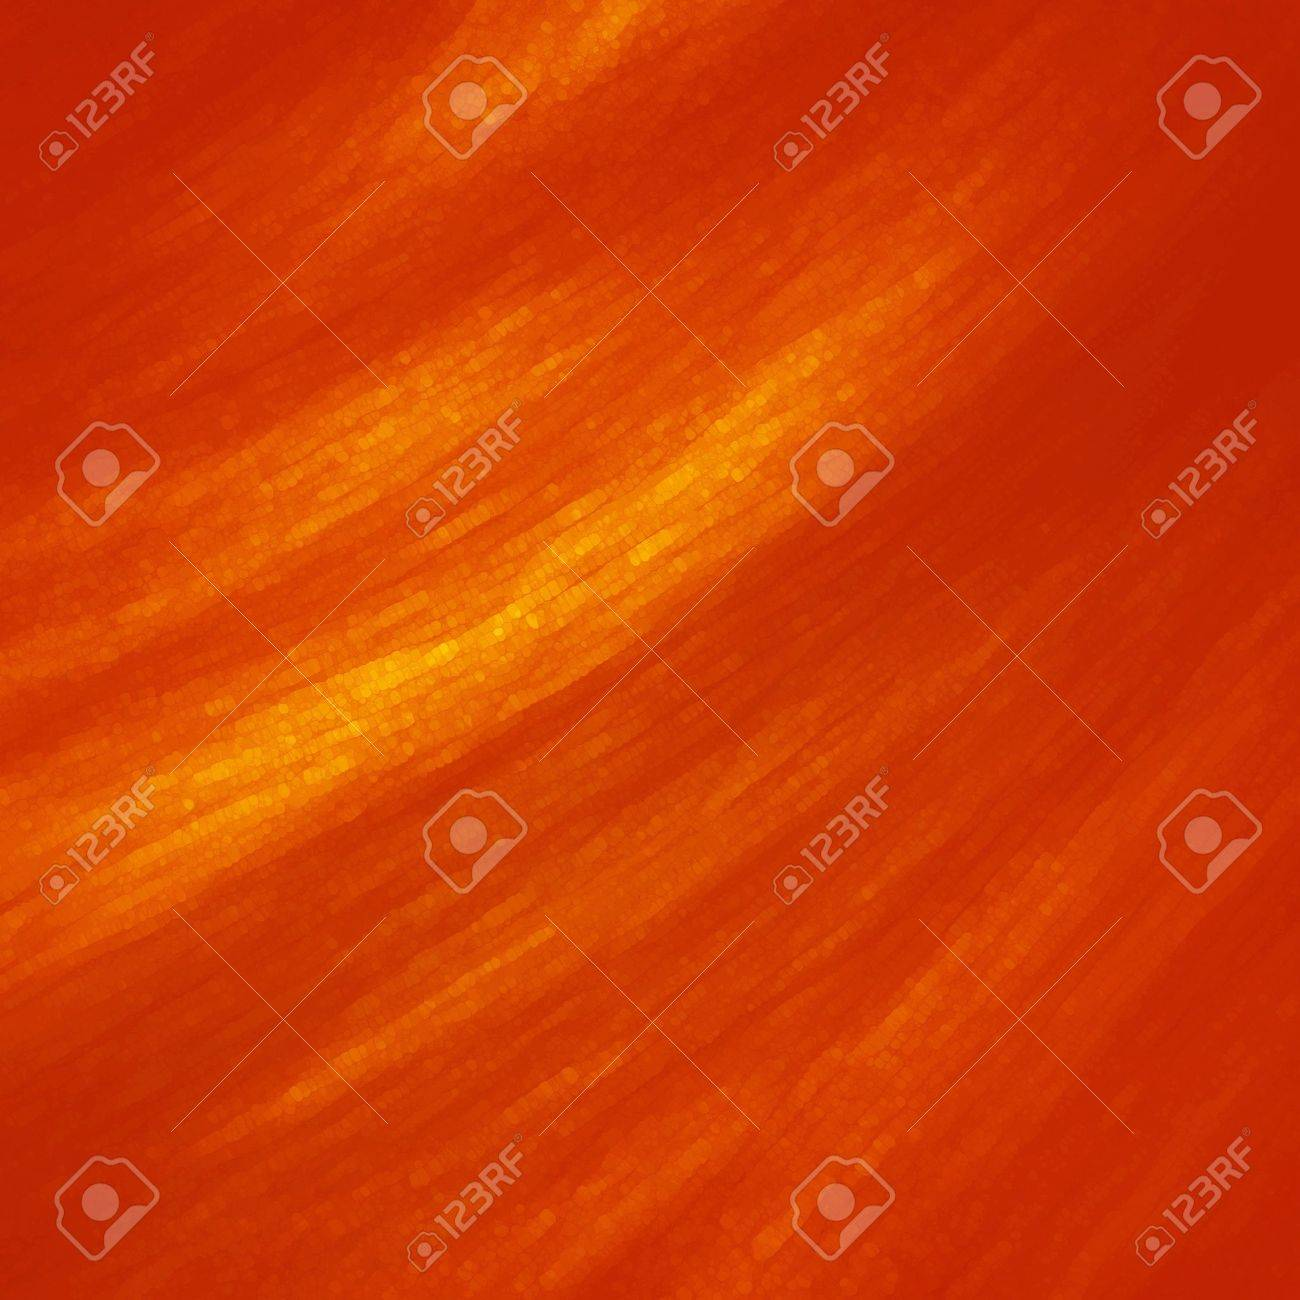 warm orange background abstract cloth with glittery lights illustration, wavy folds of silk texture satin or velvet material, halloween autumn background or wallpaper design elegant curves in material Stock Illustration - 21732801